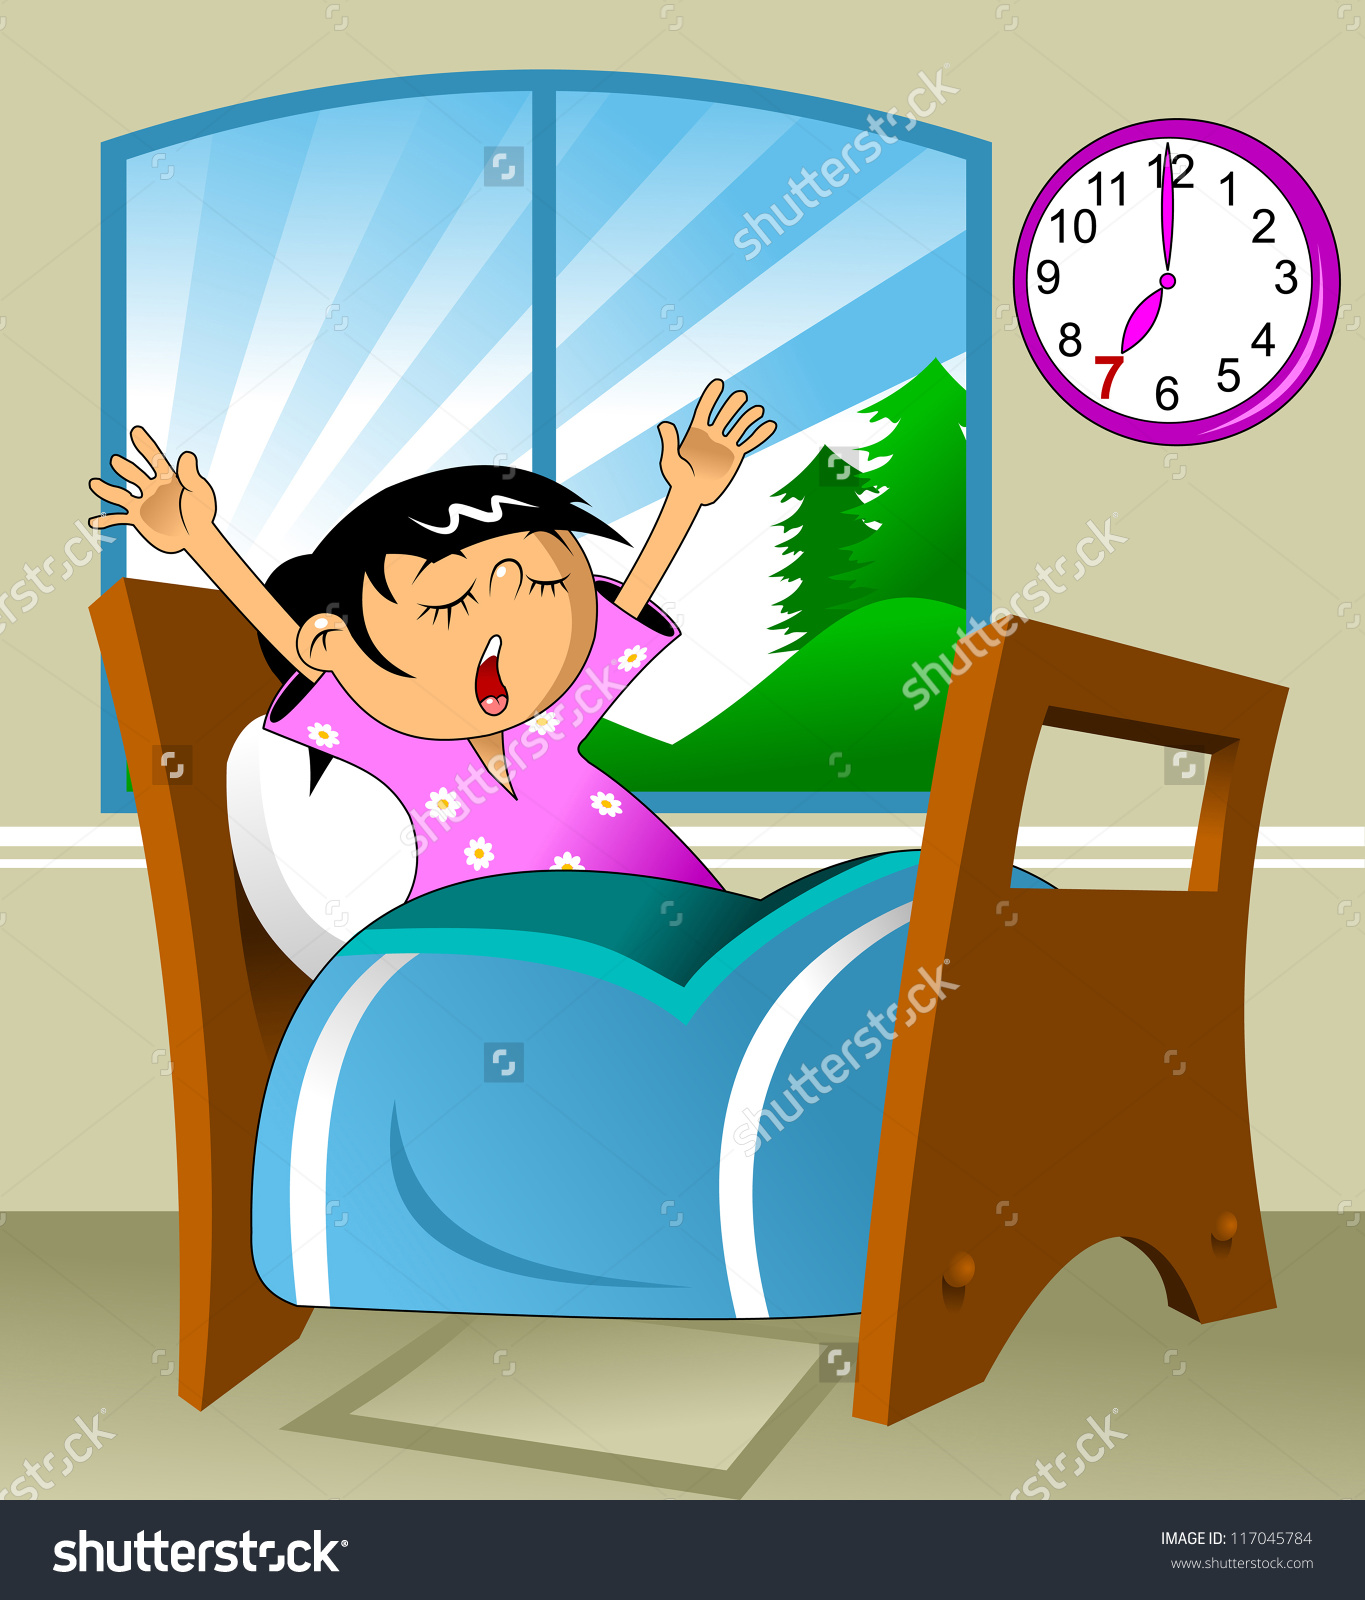 morning girl wake up clipart ... Save to-morning girl wake up clipart ... Save to a lightbox-17